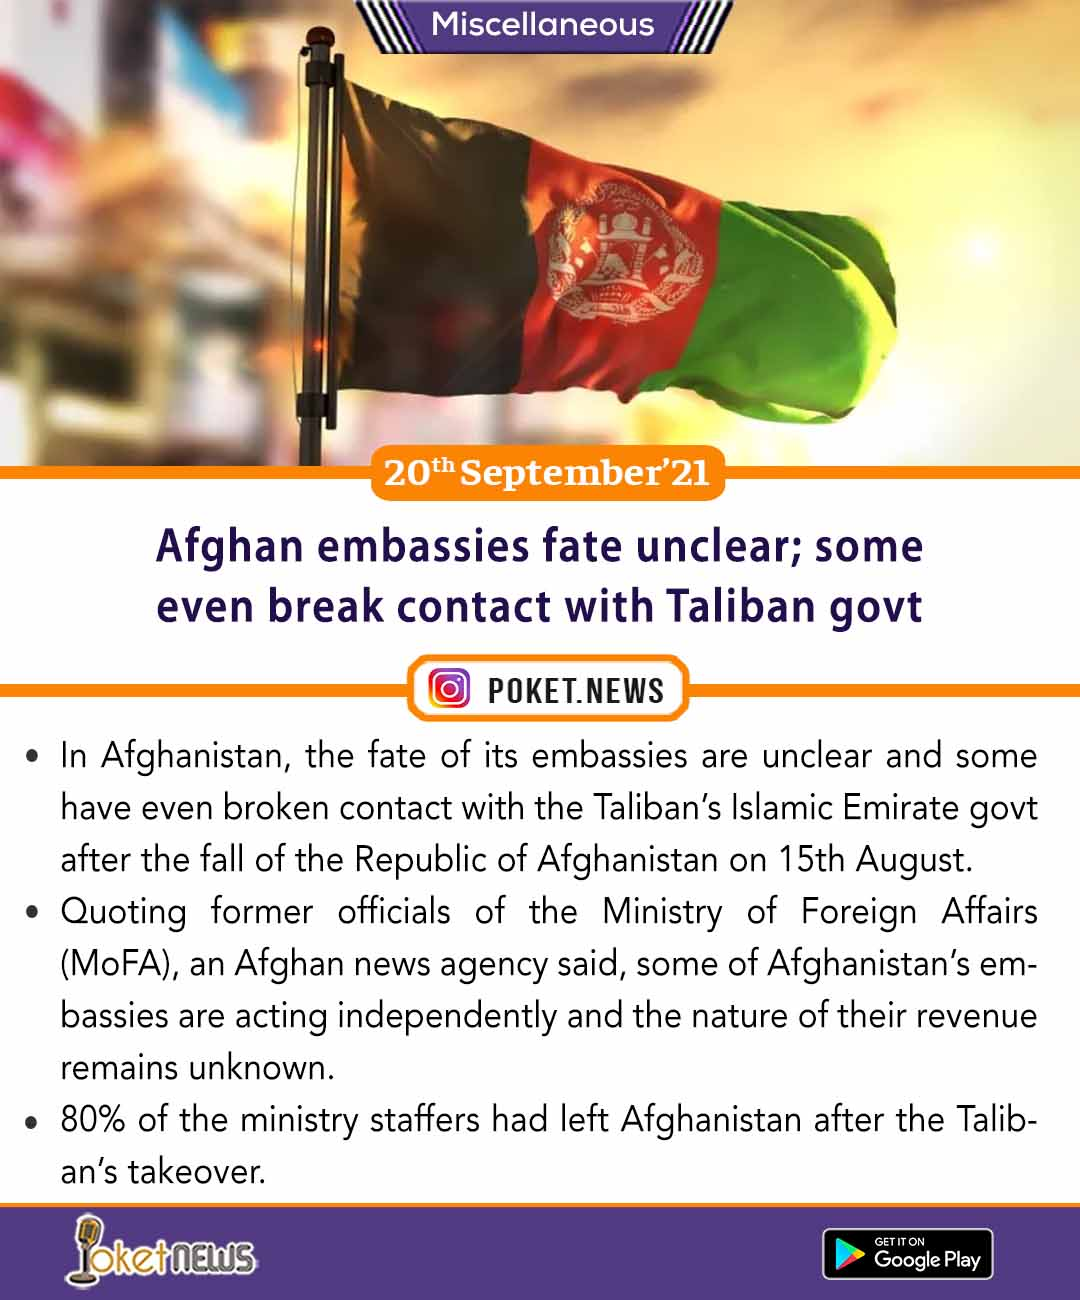 Afghan embassies fate unclear; some even break contact with Taliban govt